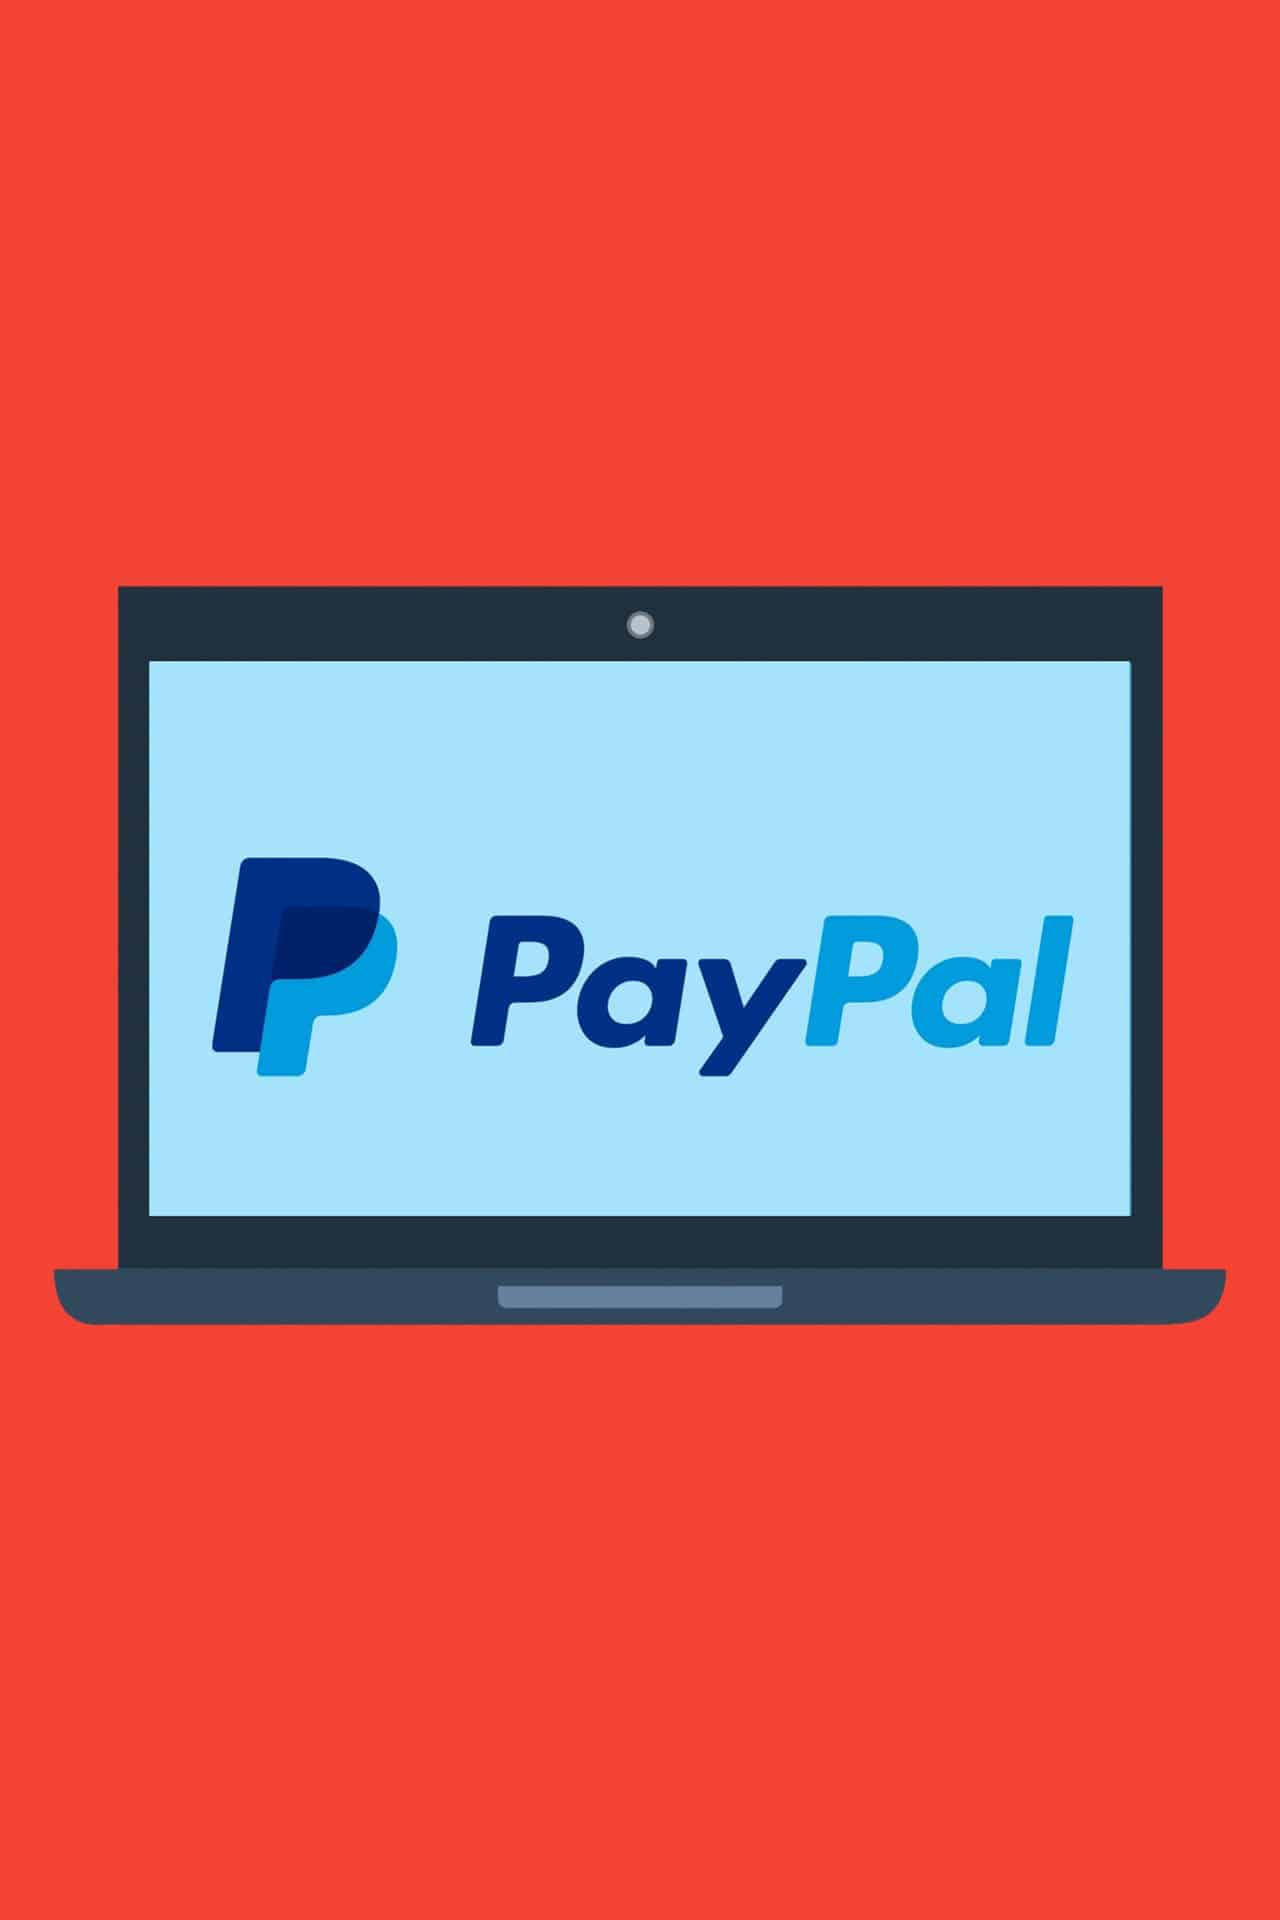 Paypal commerce platform